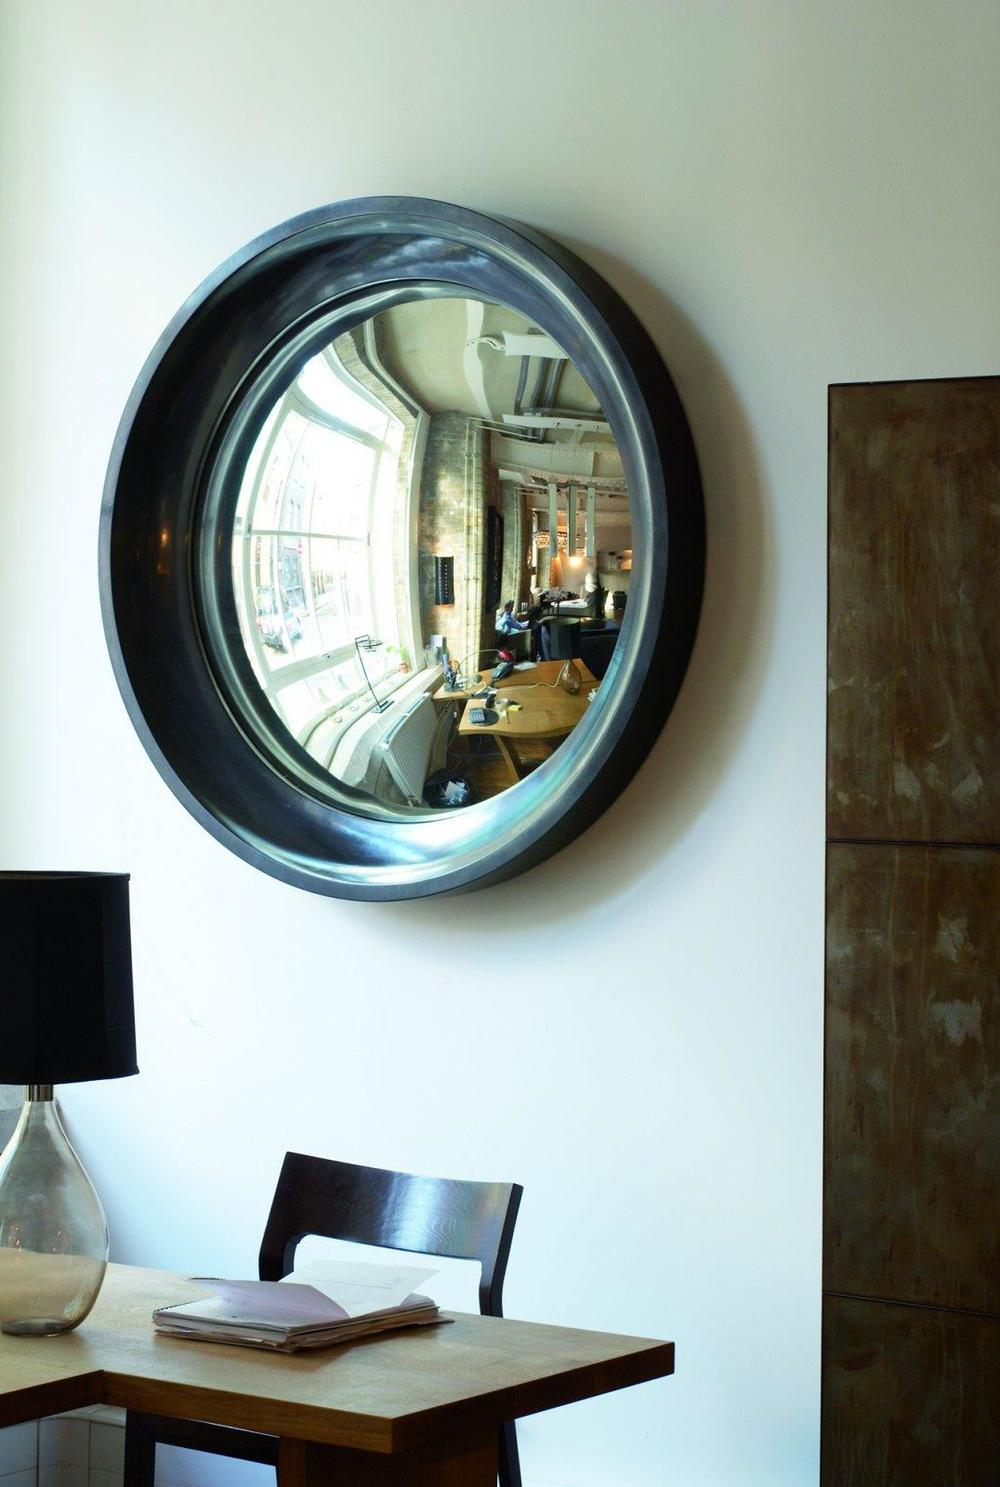 GALLERY: 15 Interiors Turned Abstract Wall Art by a Convex / Curved Mirror